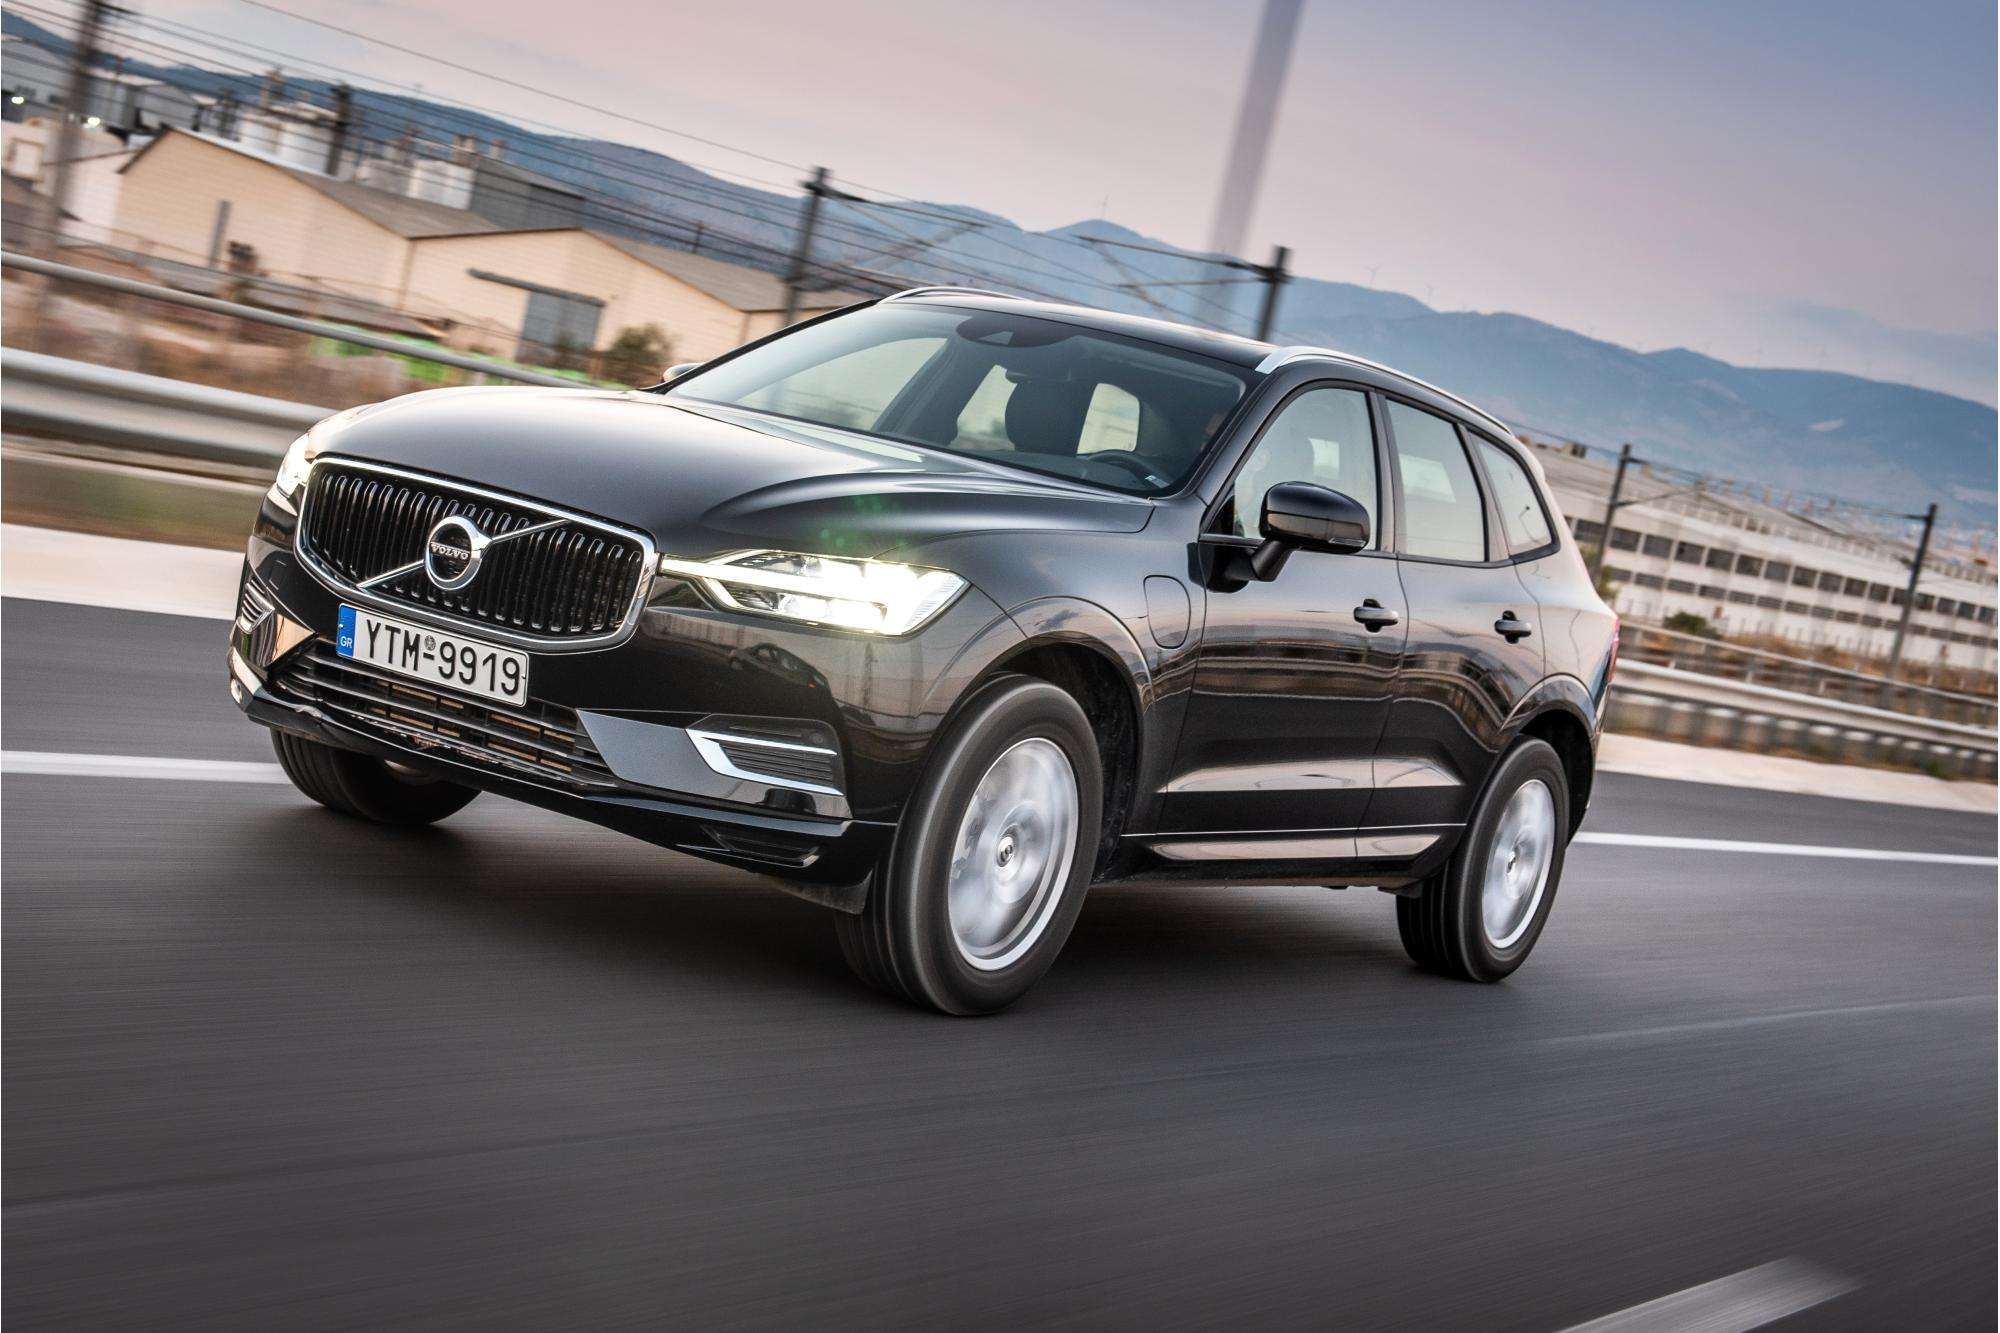 Volvo XC60 T8 407Ps & D5 235Ps